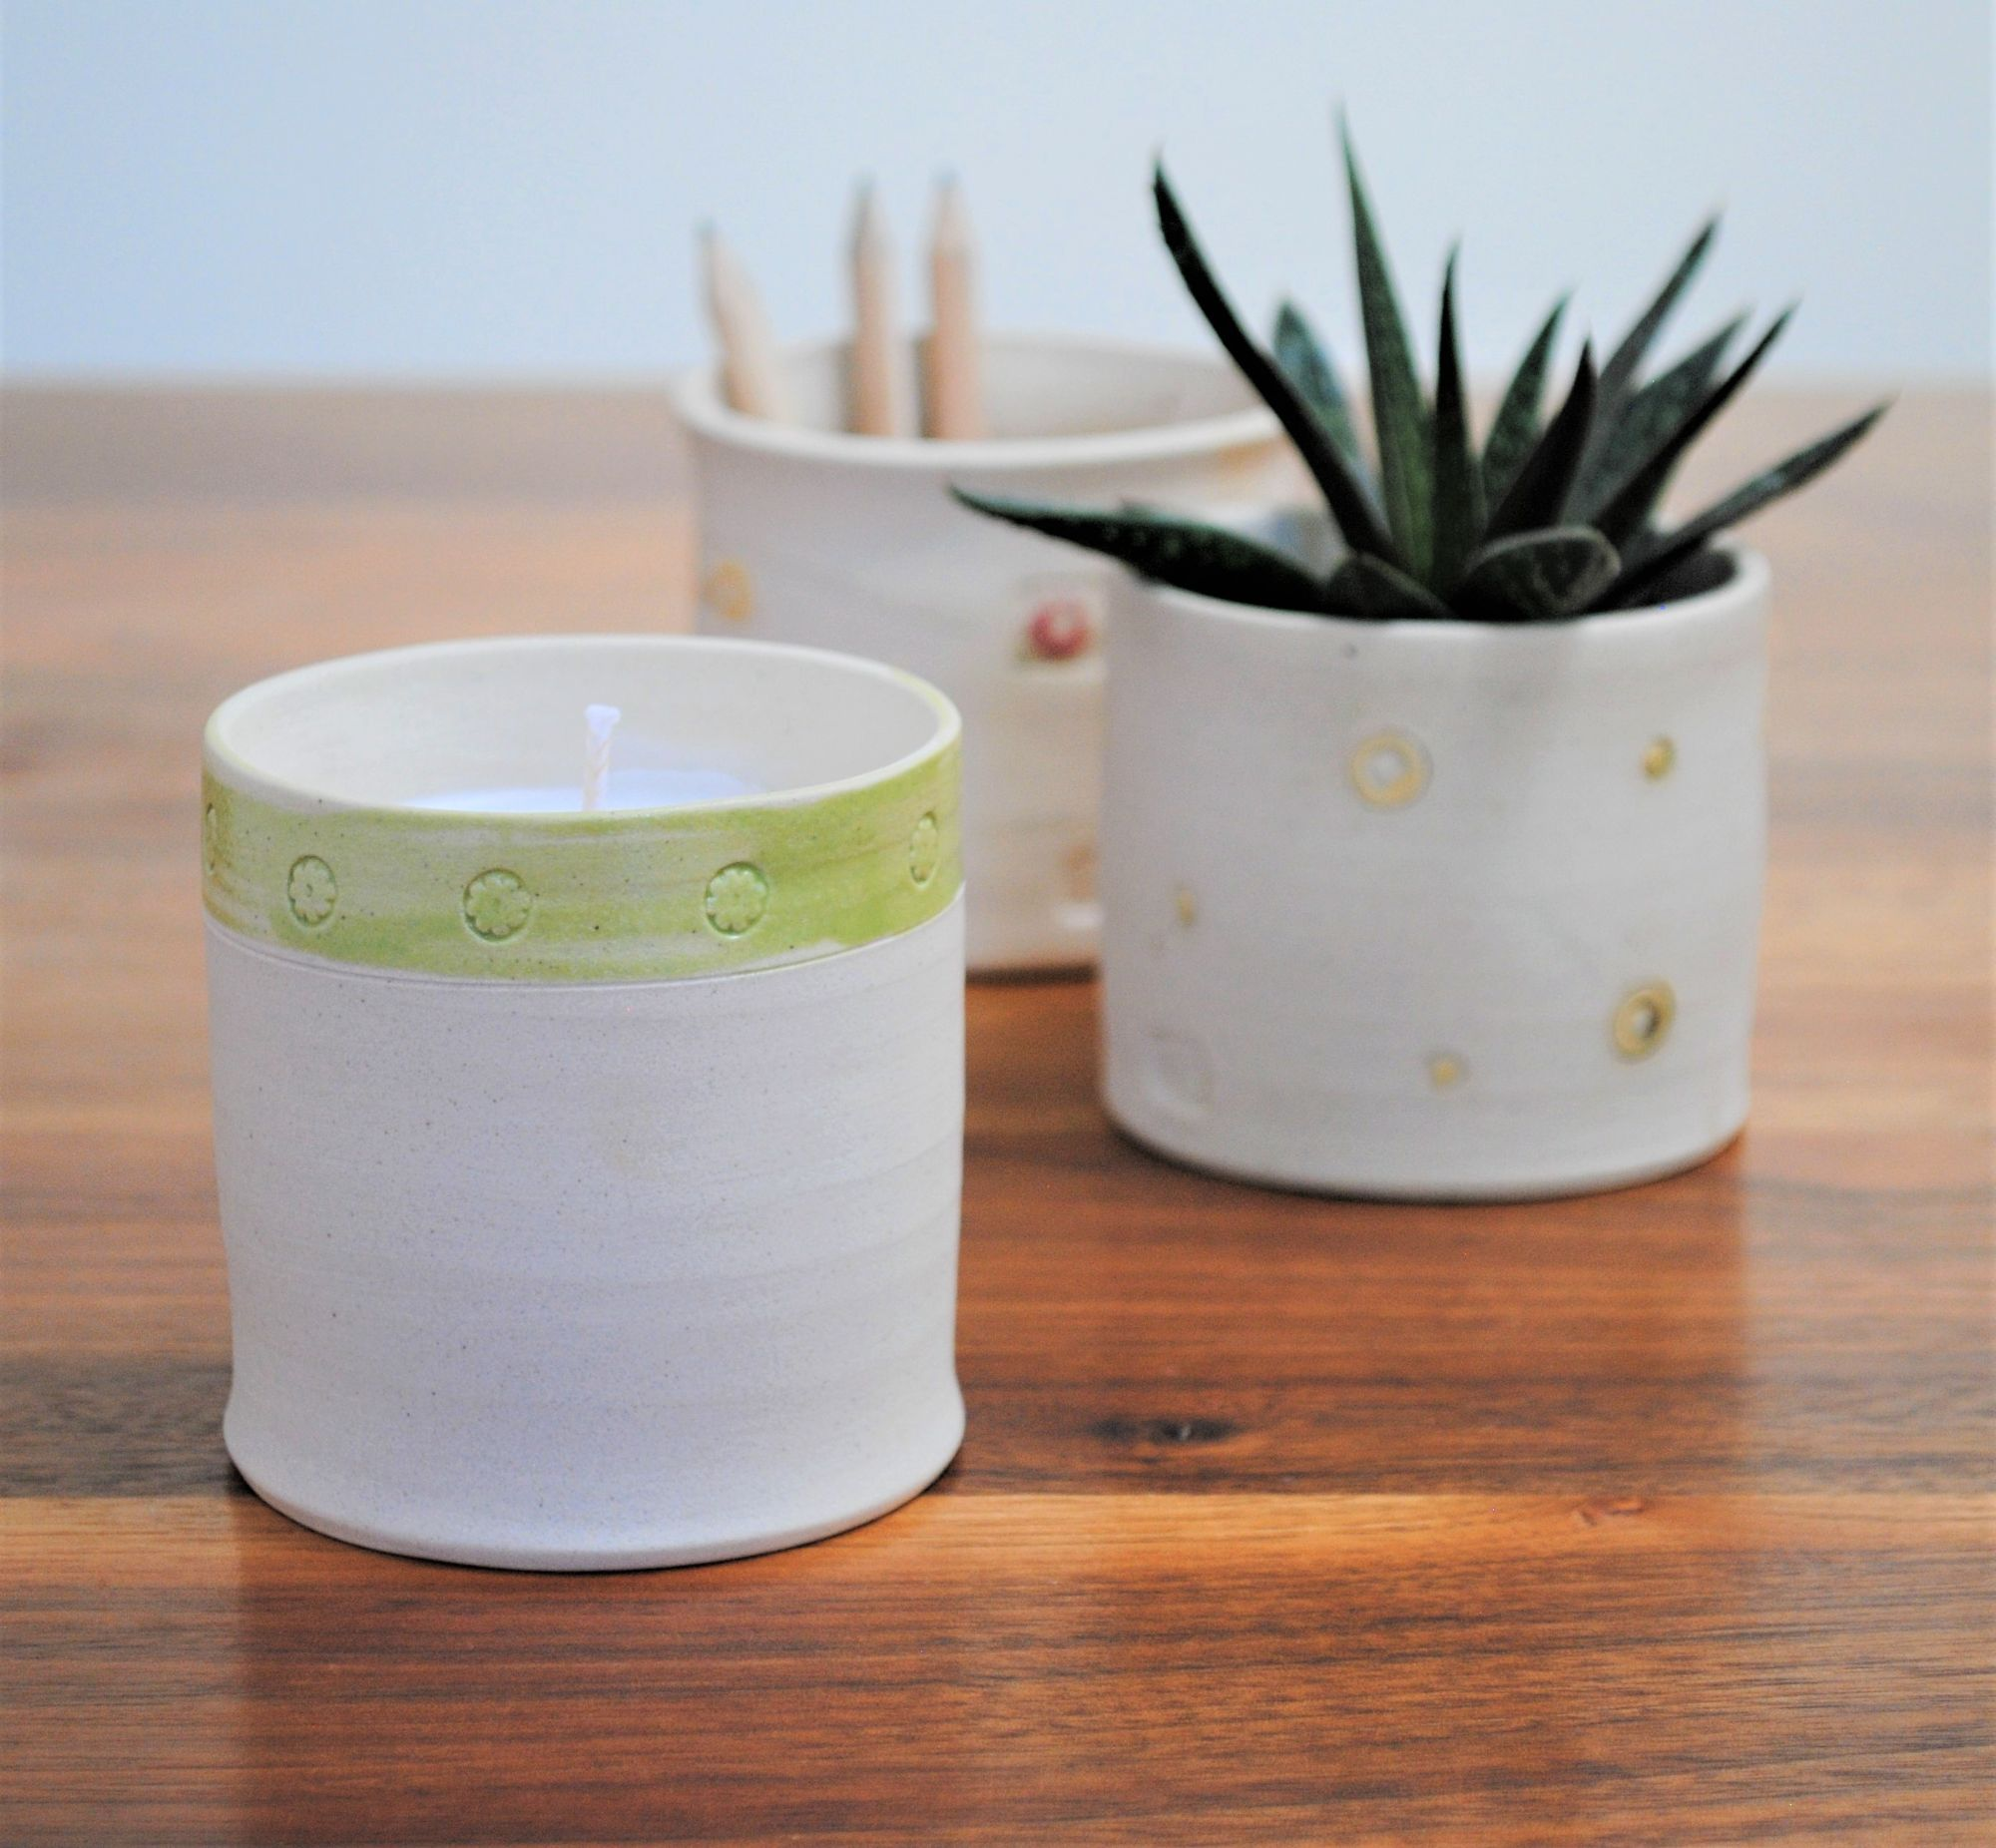 scented candles in a reusable ceramic pot